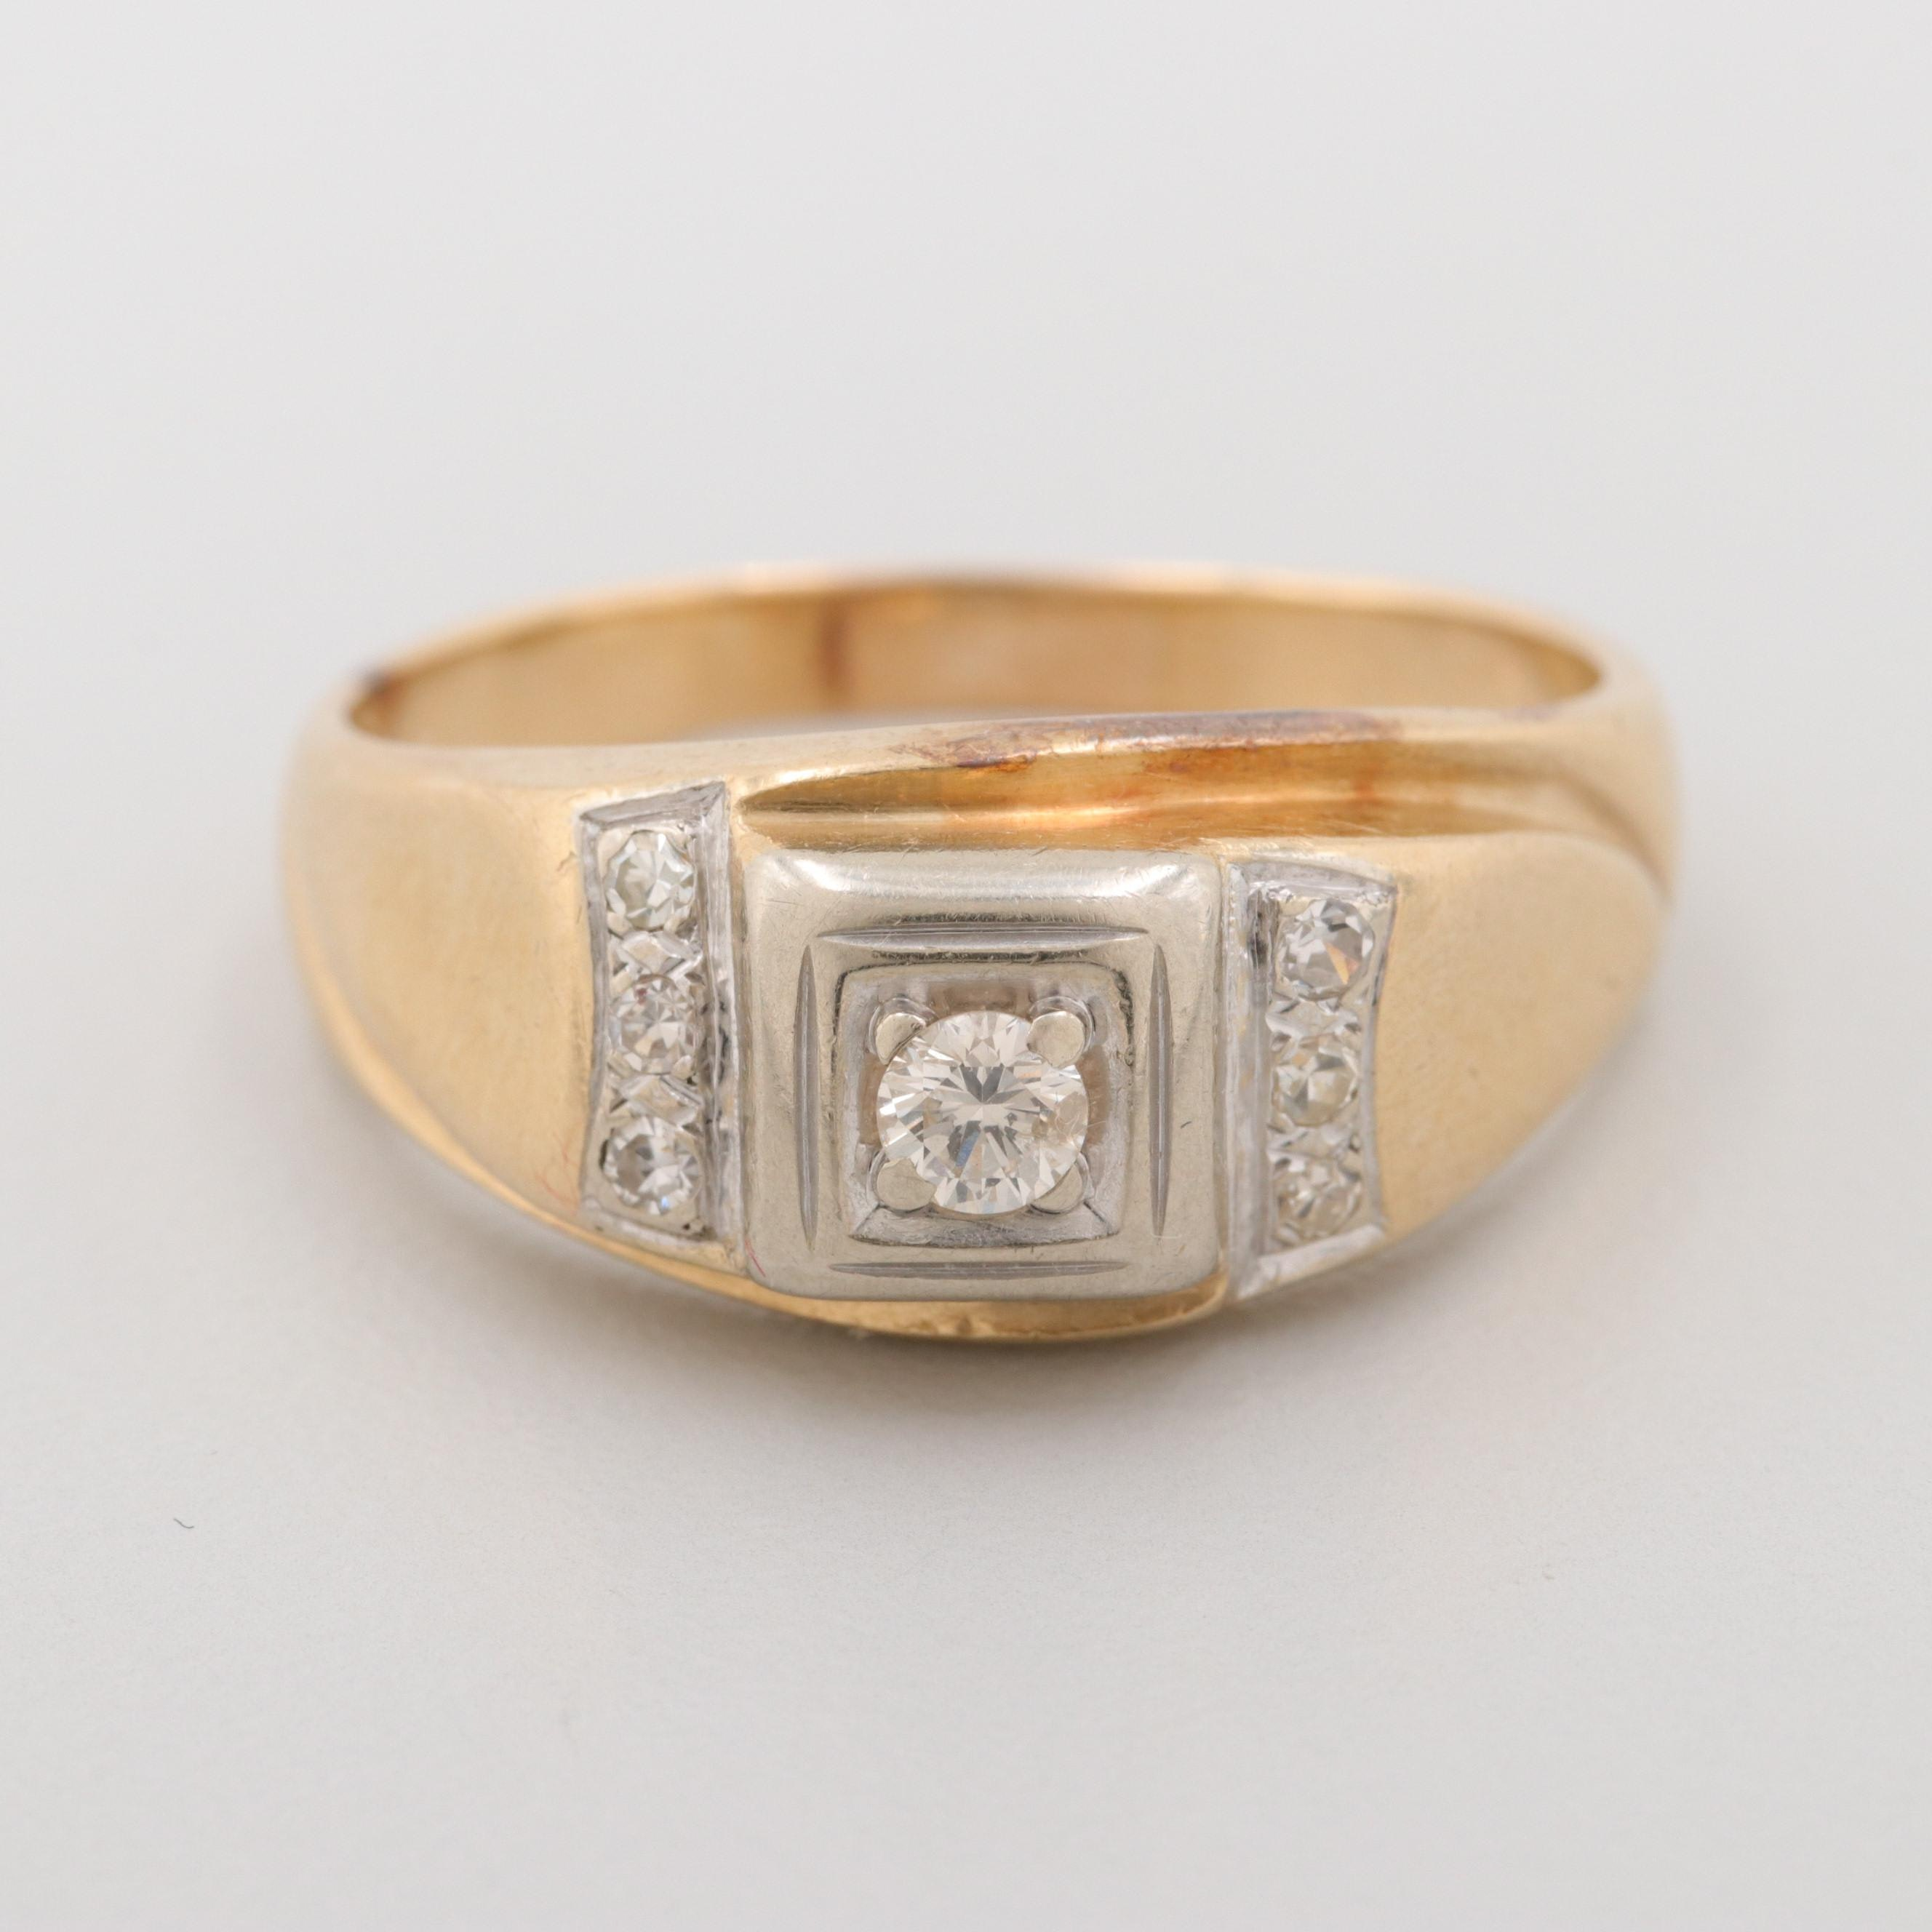 14K Yellow Gold Diamond Ring with White Gold Accent